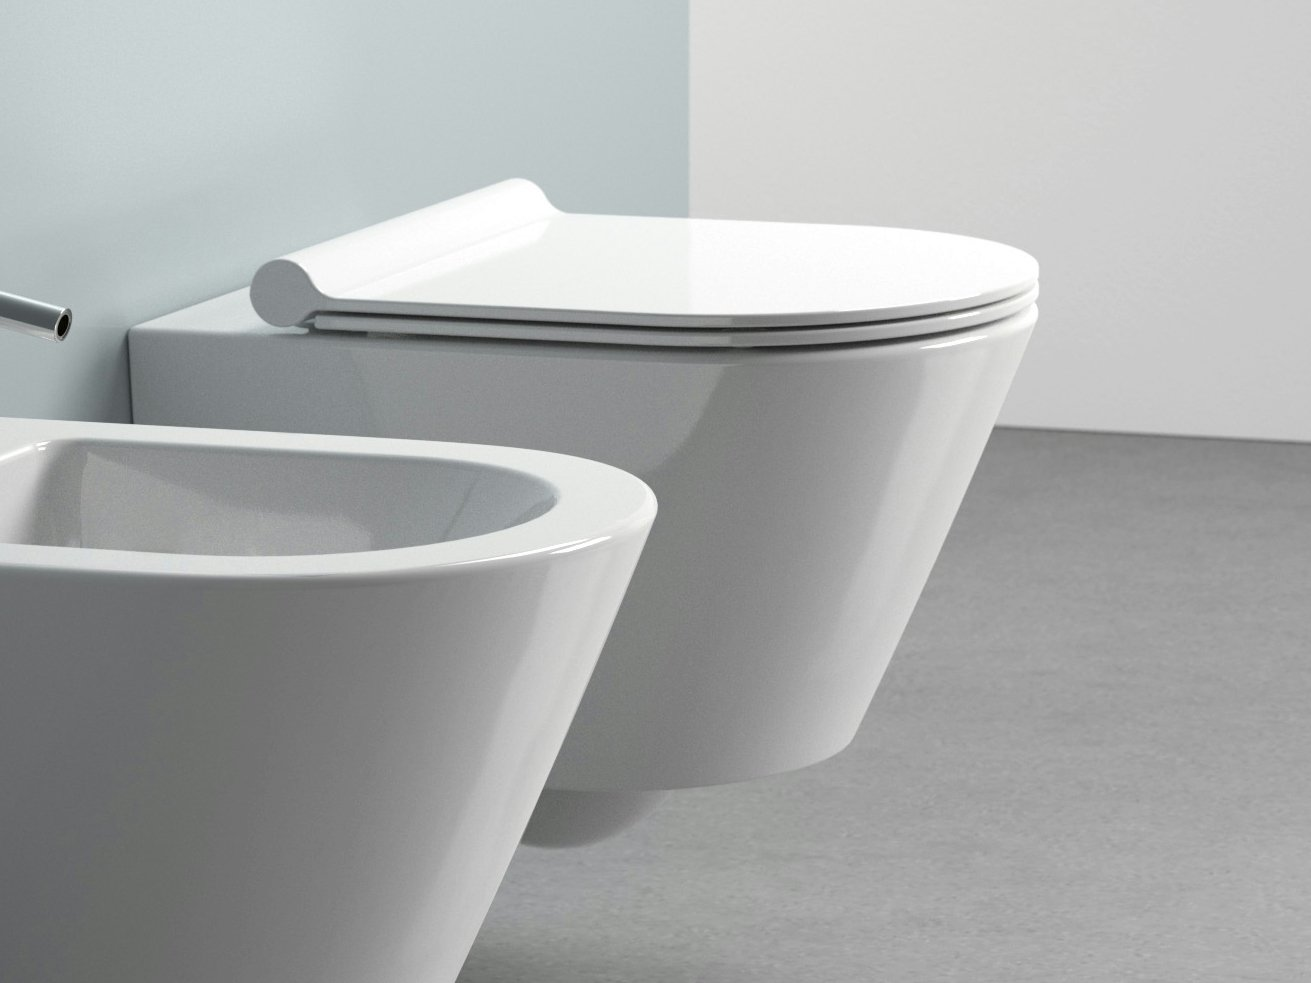 Zero 50 toilet by ceramica catalano for Ceramica catalano